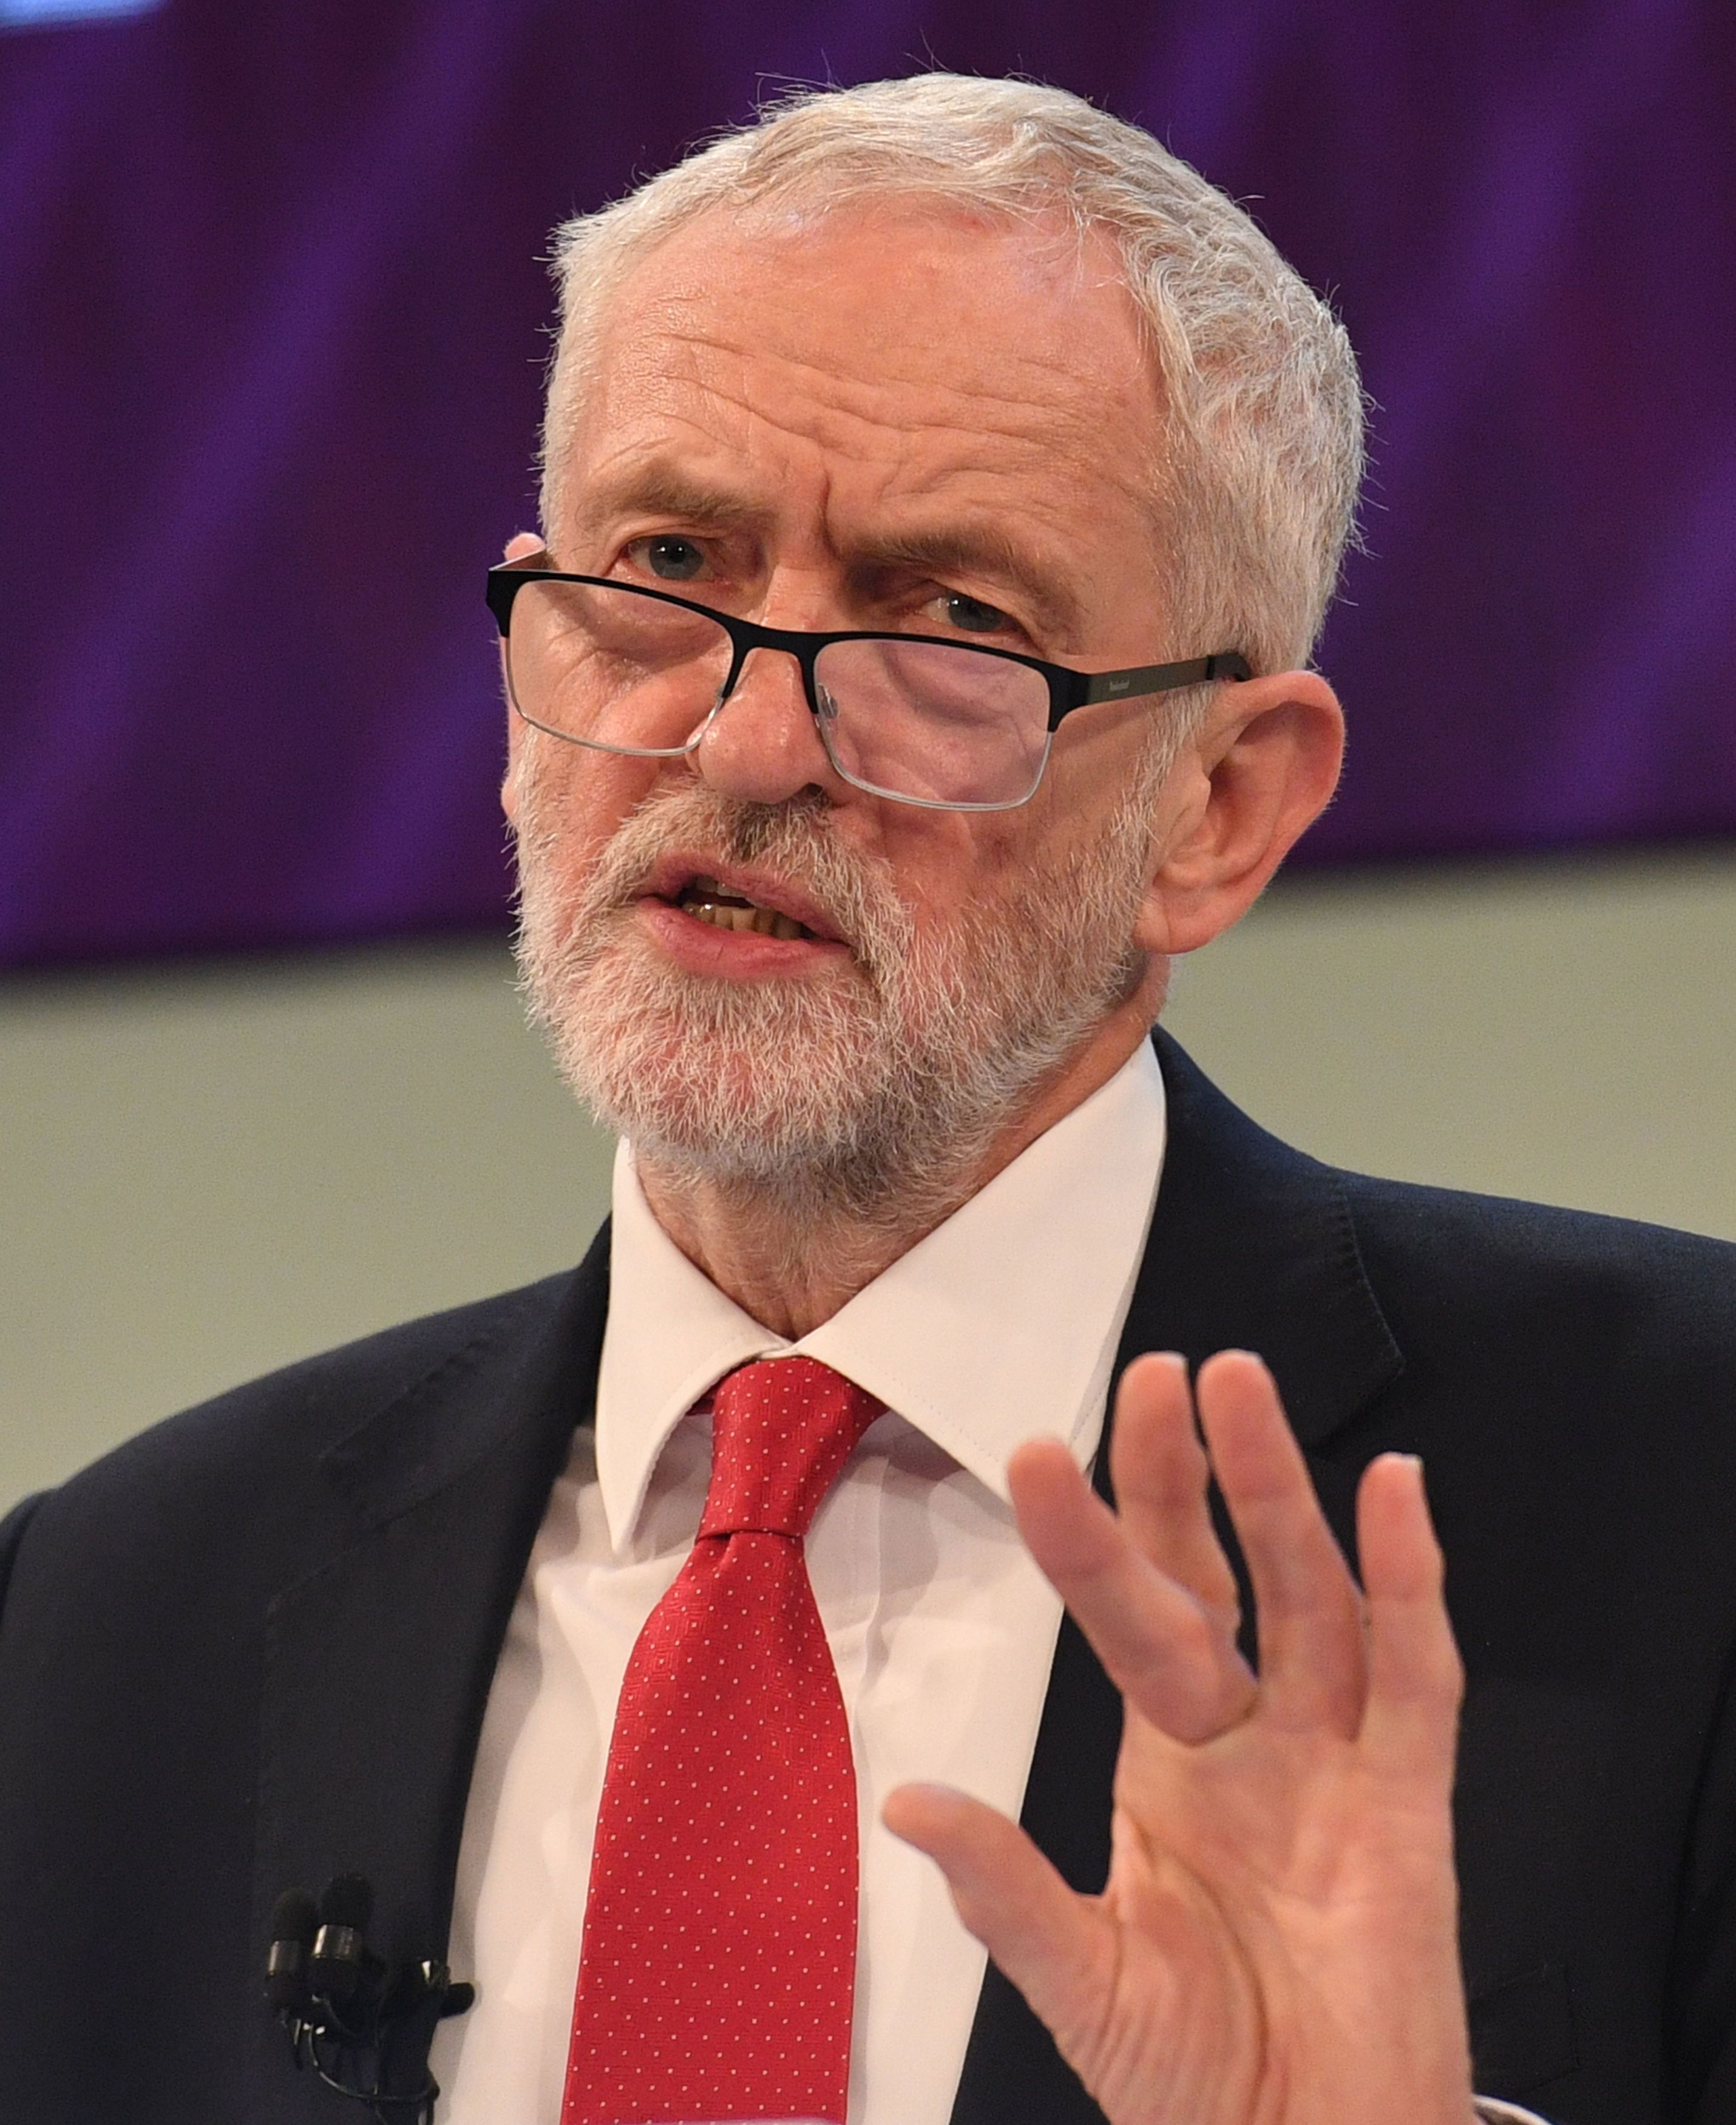 Brexit Pressure On Jeremy Corbyn As 10,000 Labour Members And Supporters Demand Second